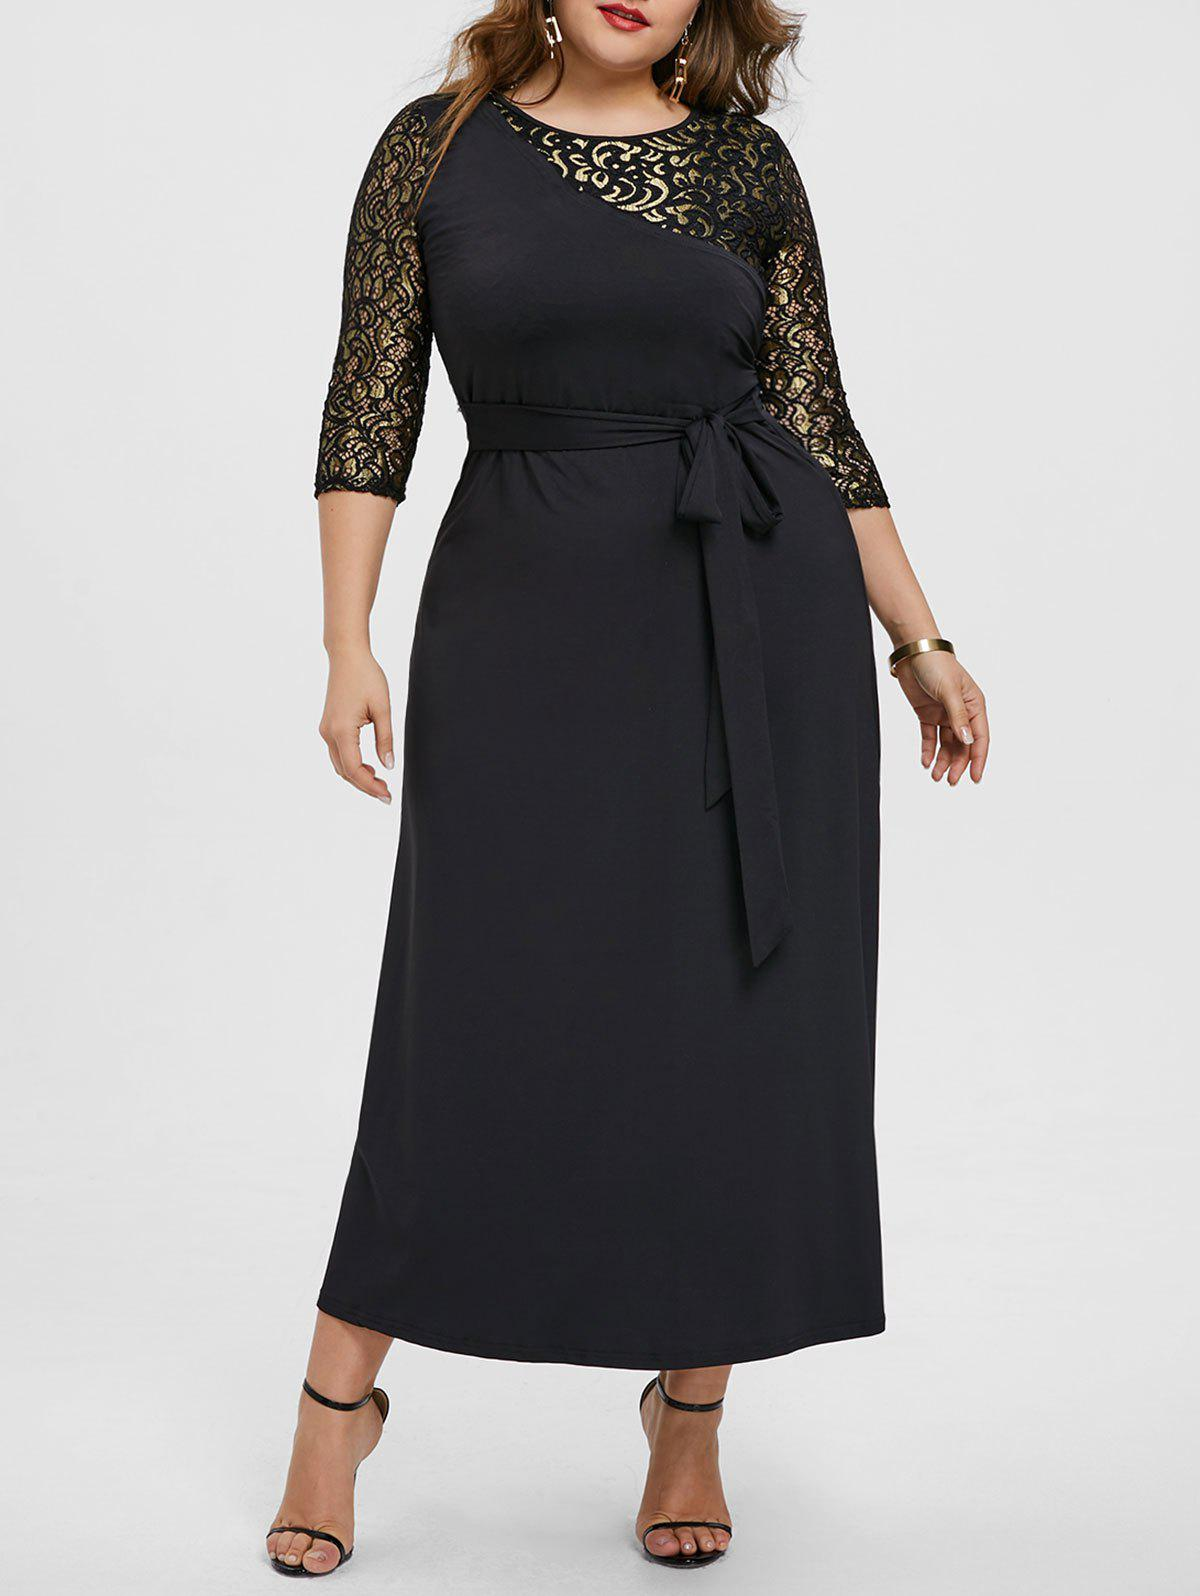 Contrast Lace Panel Plus Size Maxi Dress